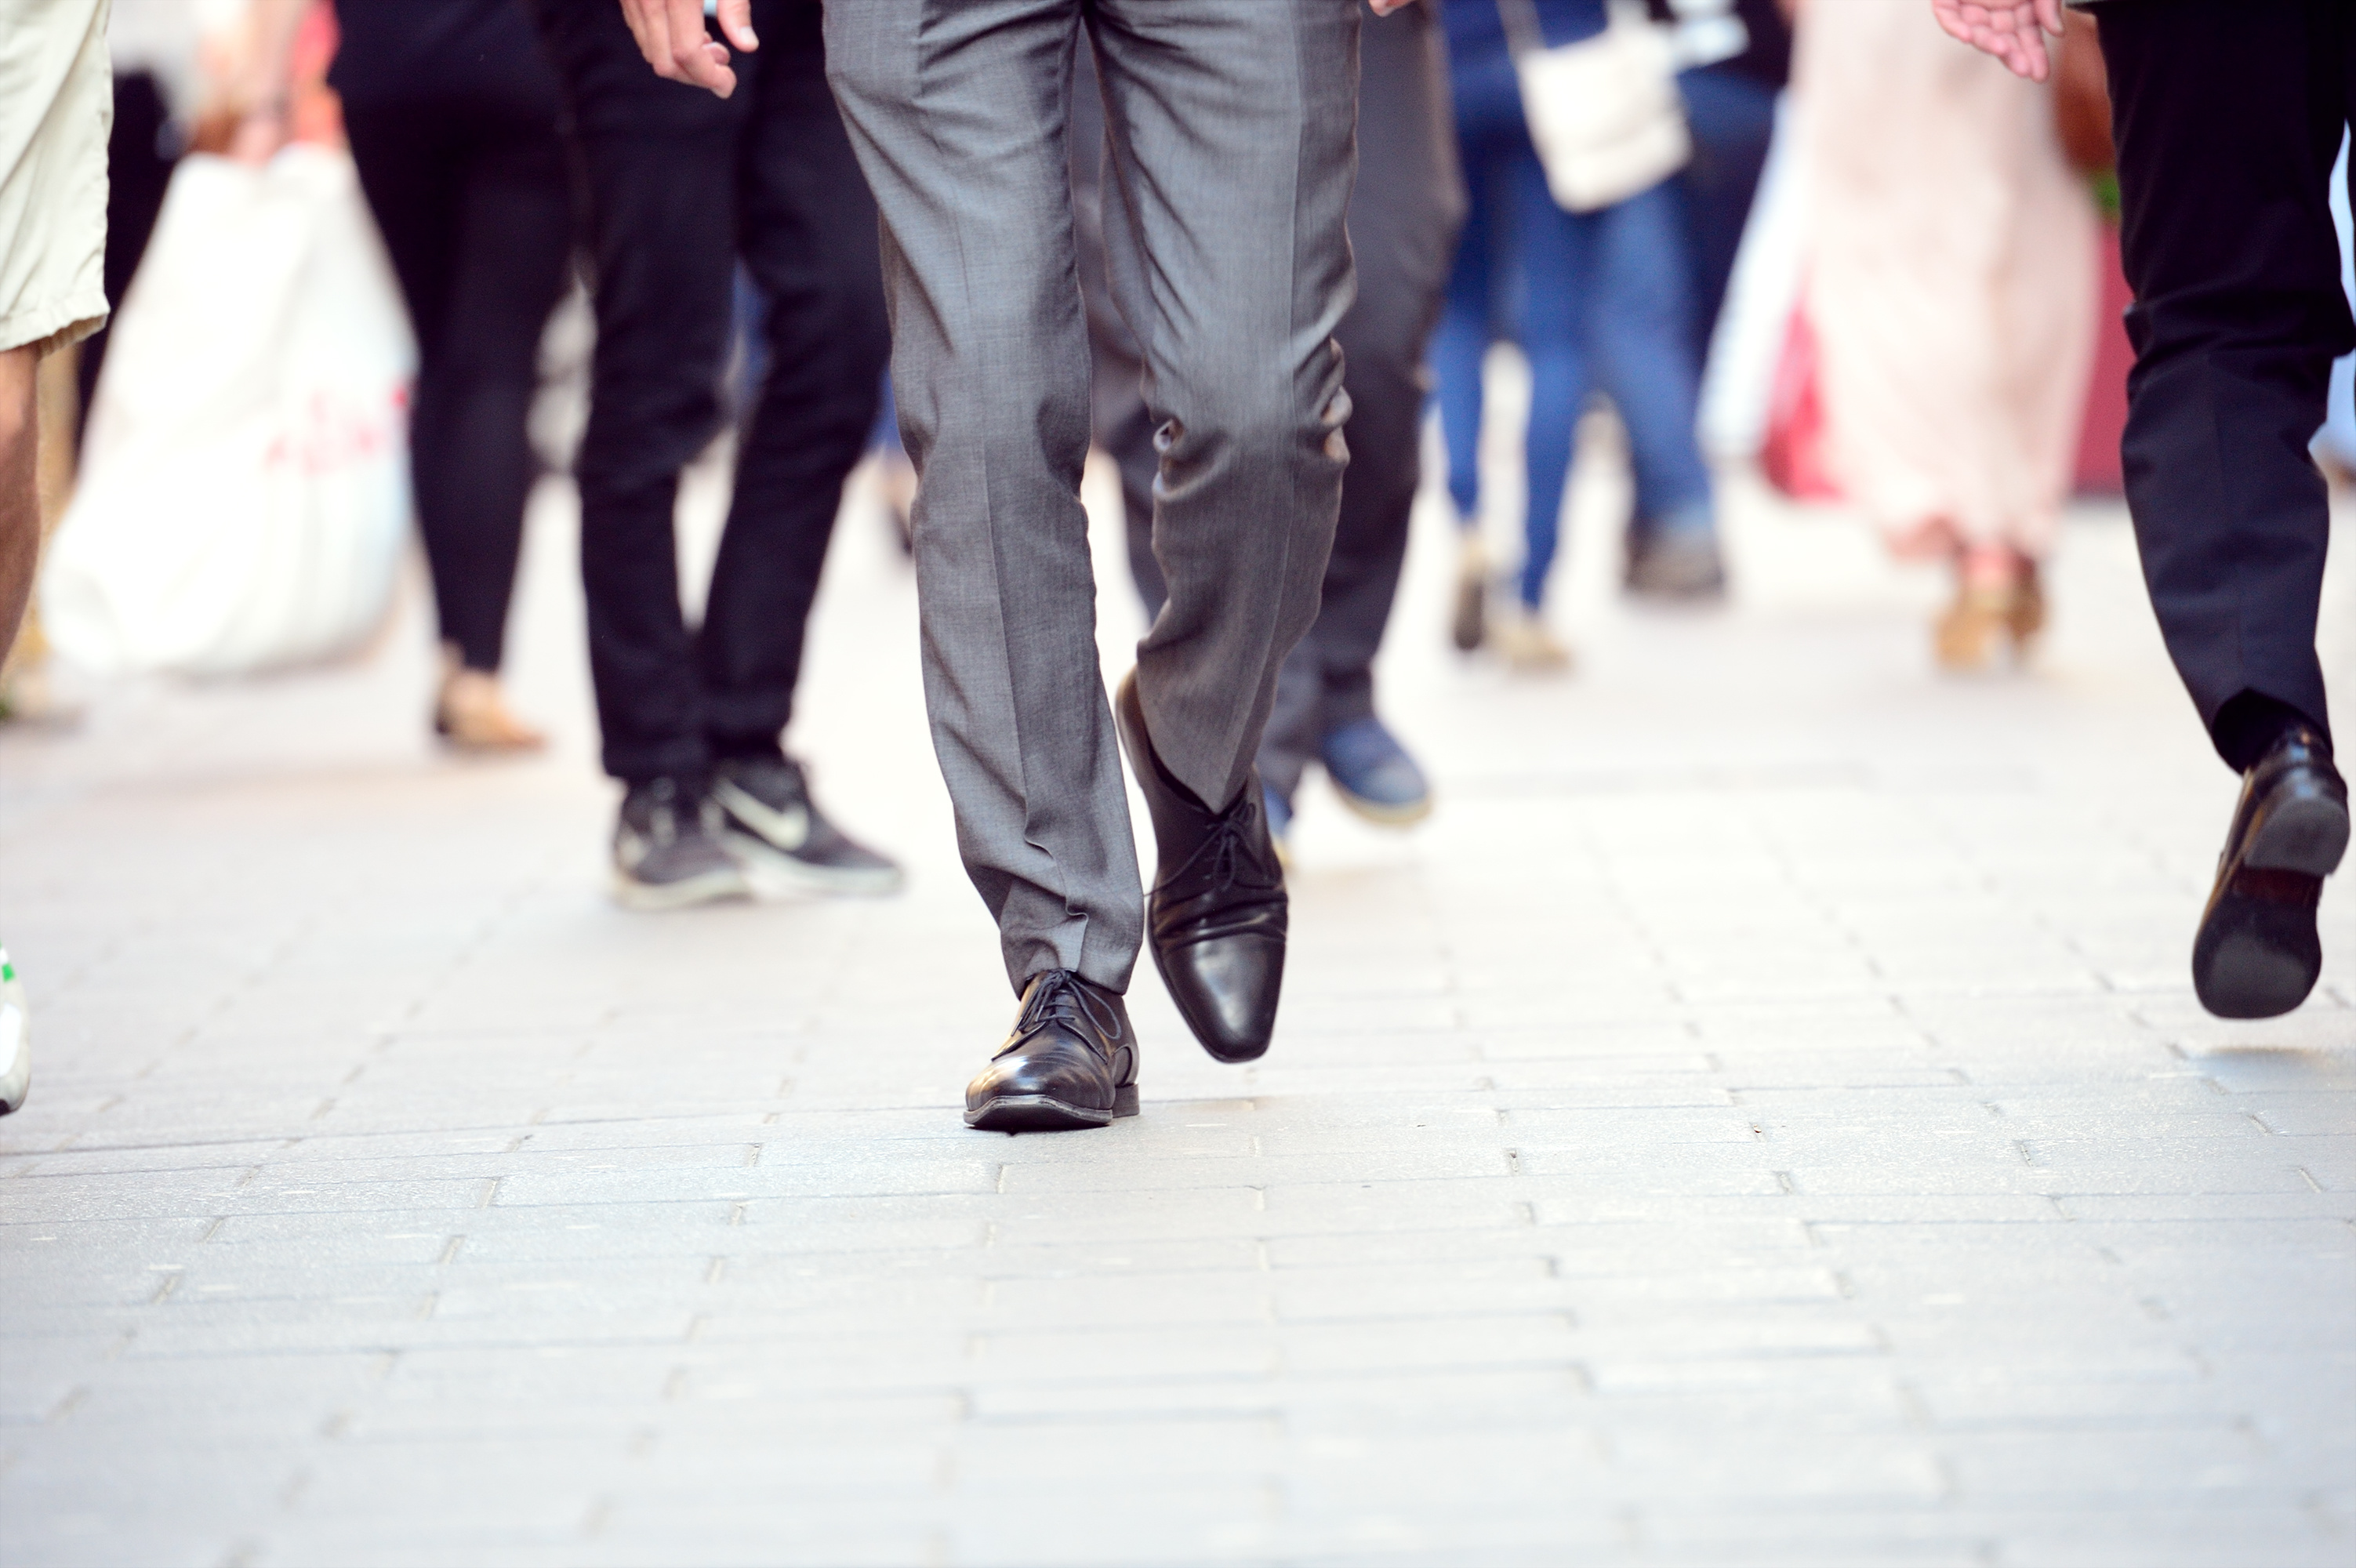 Healthy Living: The Benefits of Walking at Work